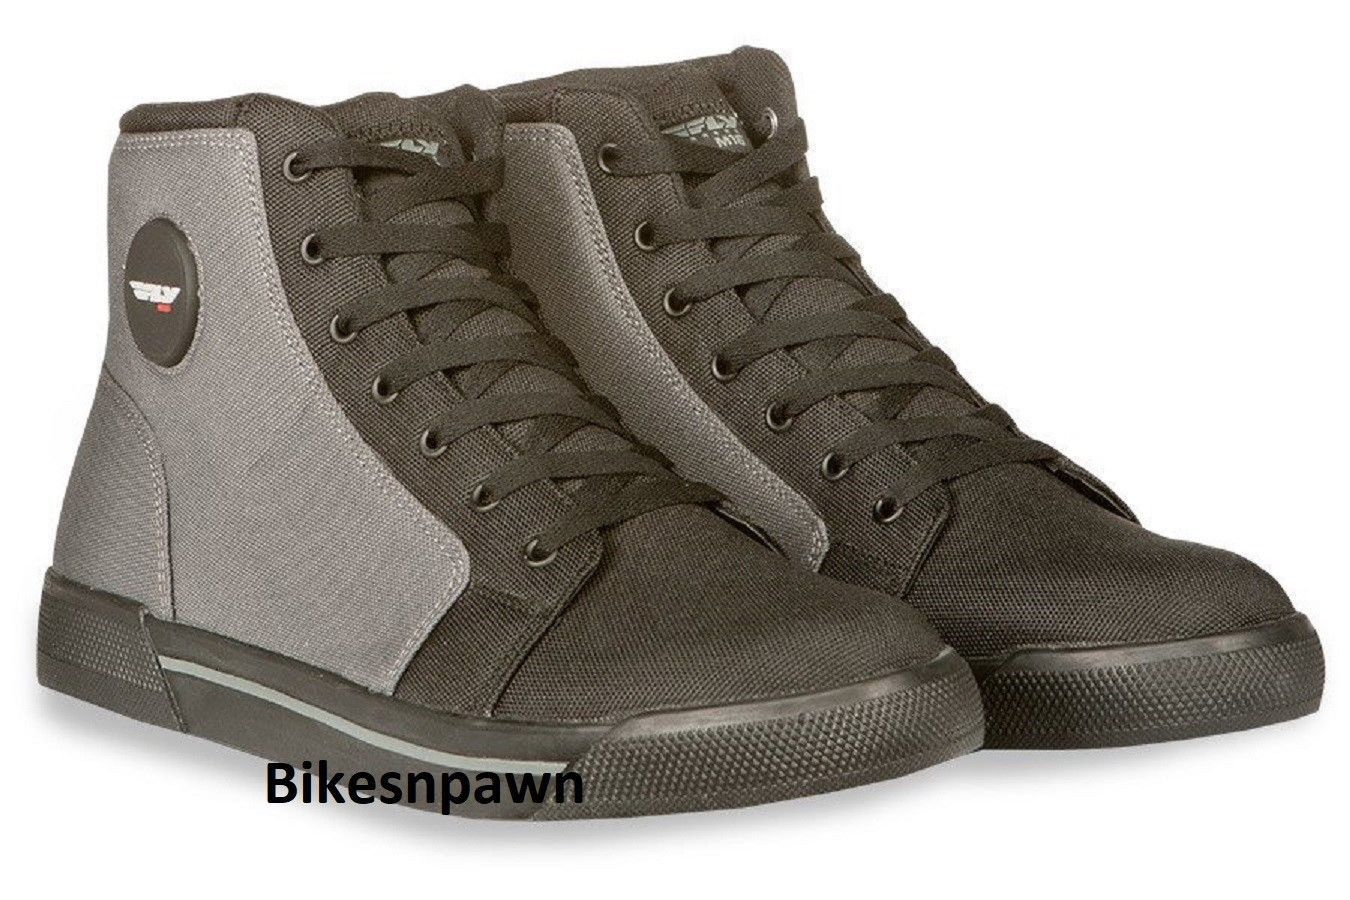 New Size 11 Mens FLY Racing M16 Canvas Motorcycle Street Riding Shoe